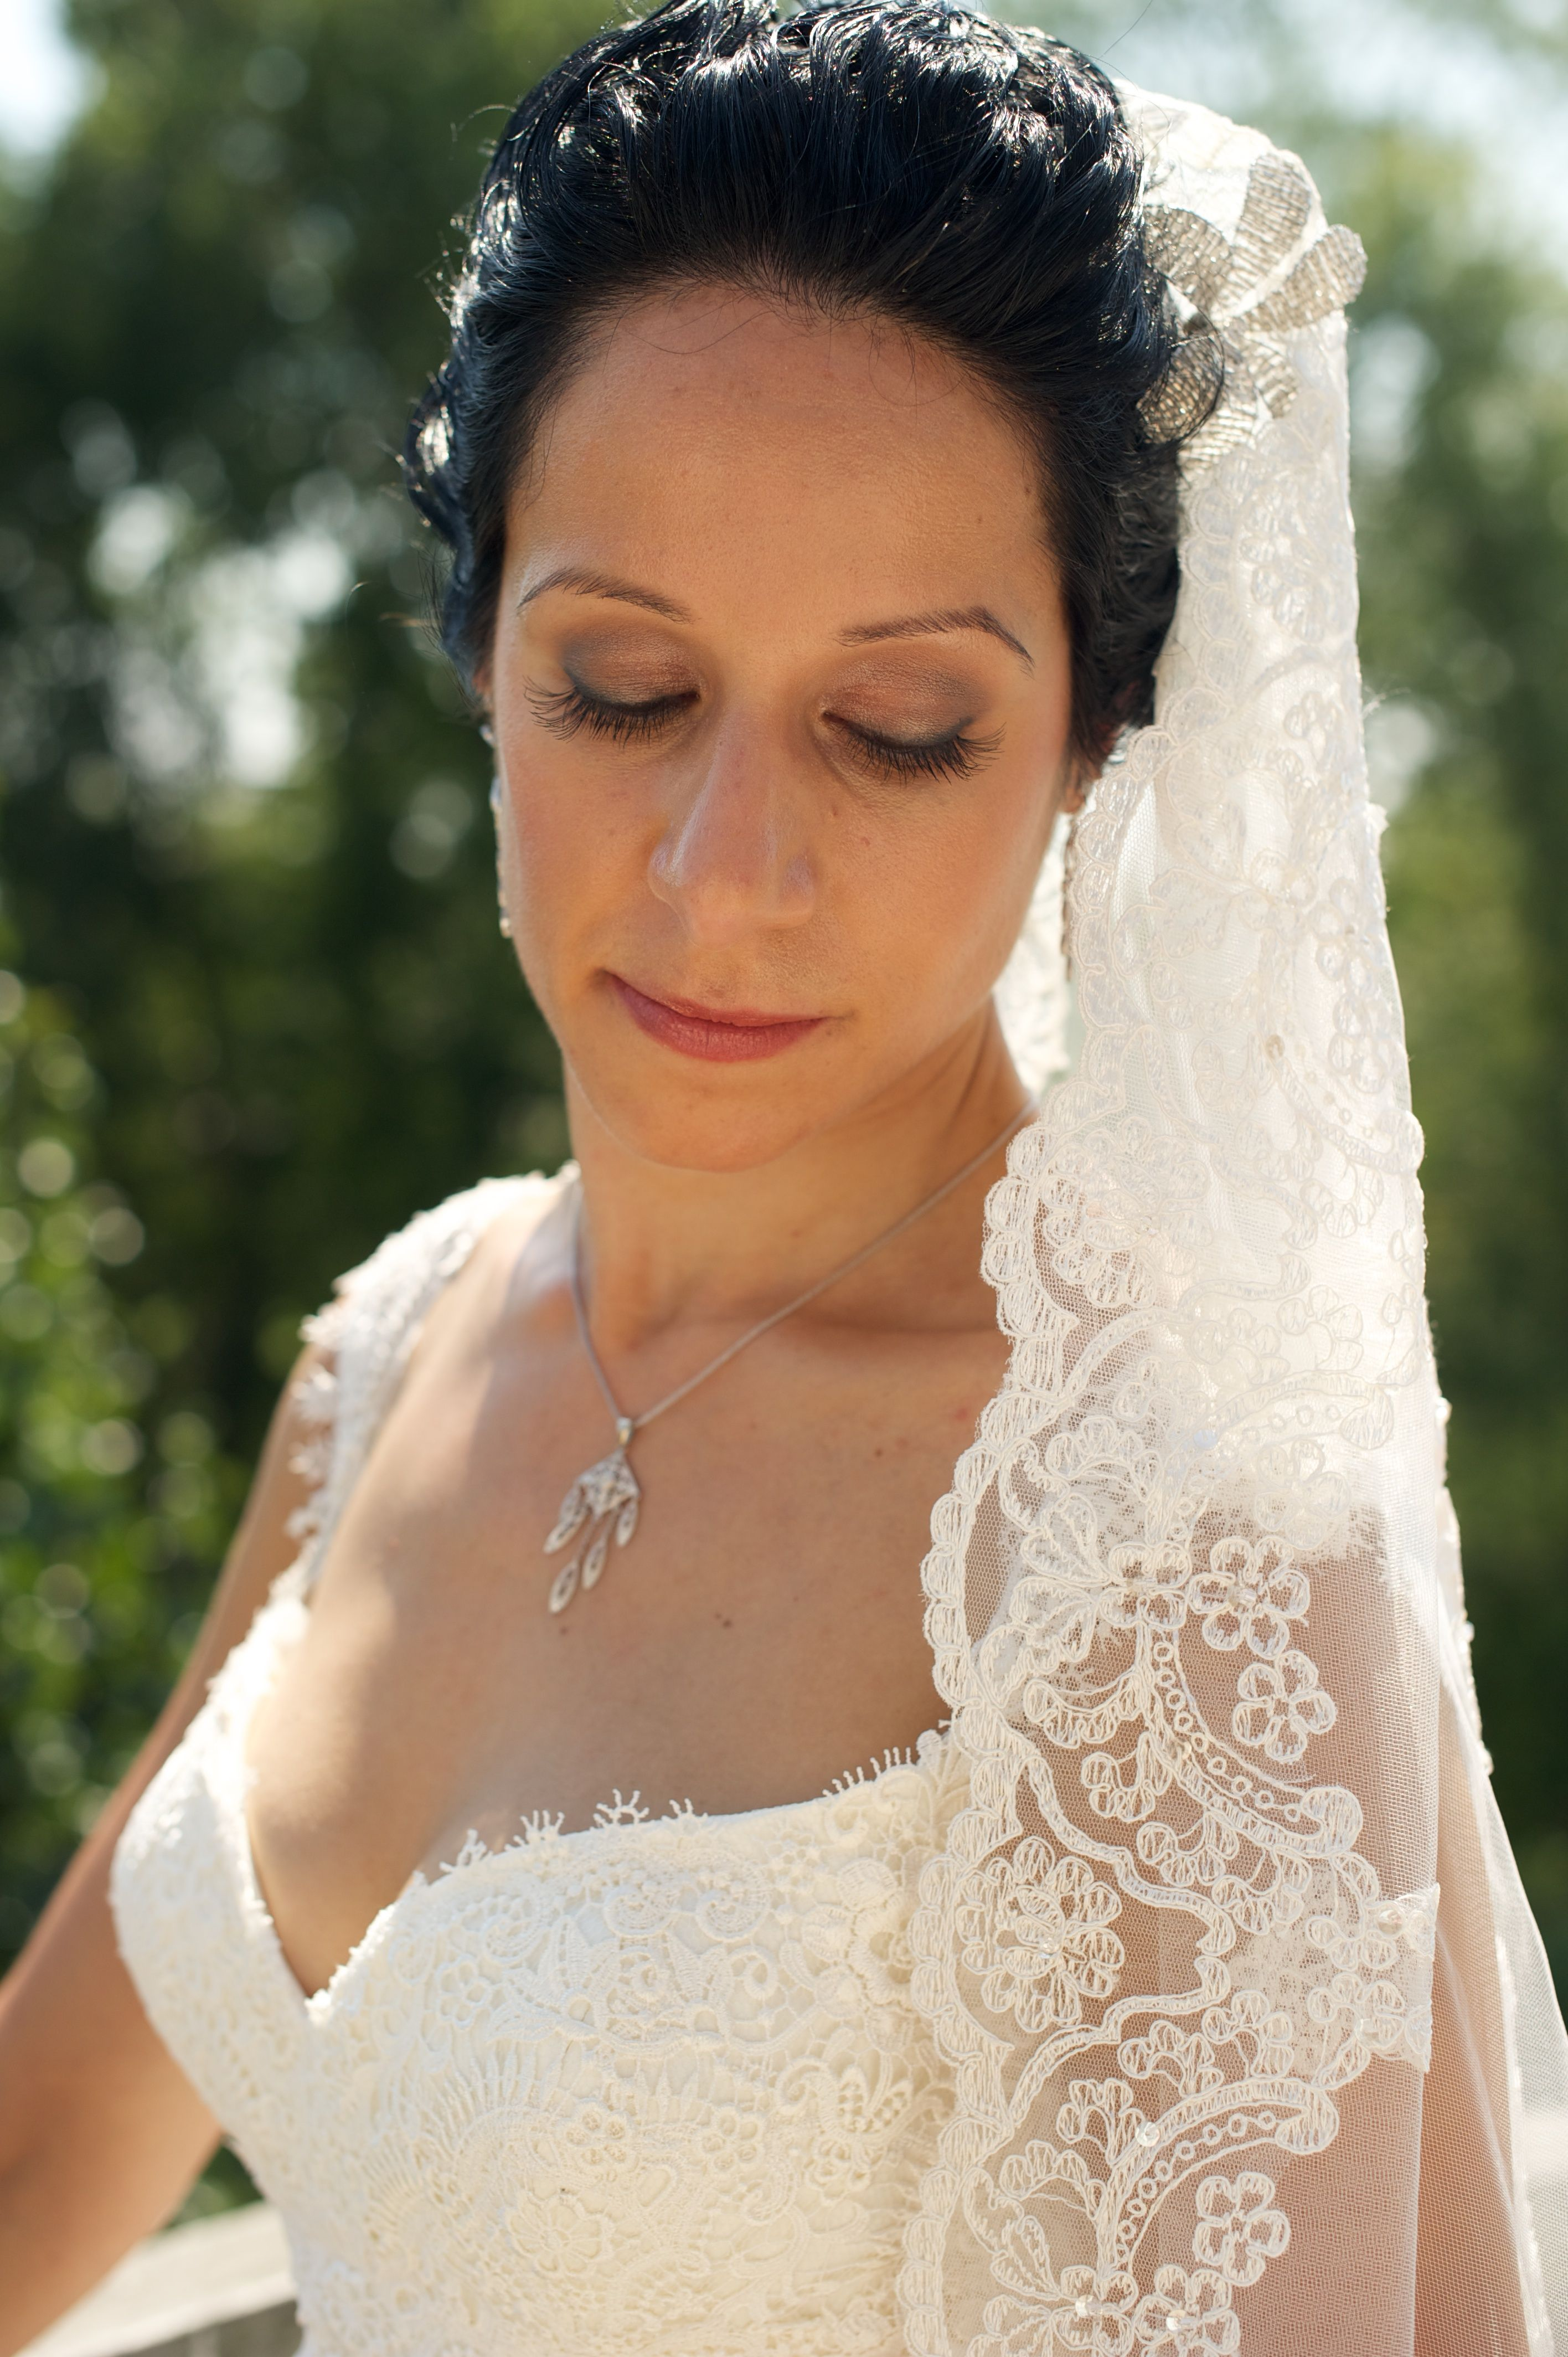 stacy economou bridal hairstyle by claudine, bridal make up by patty